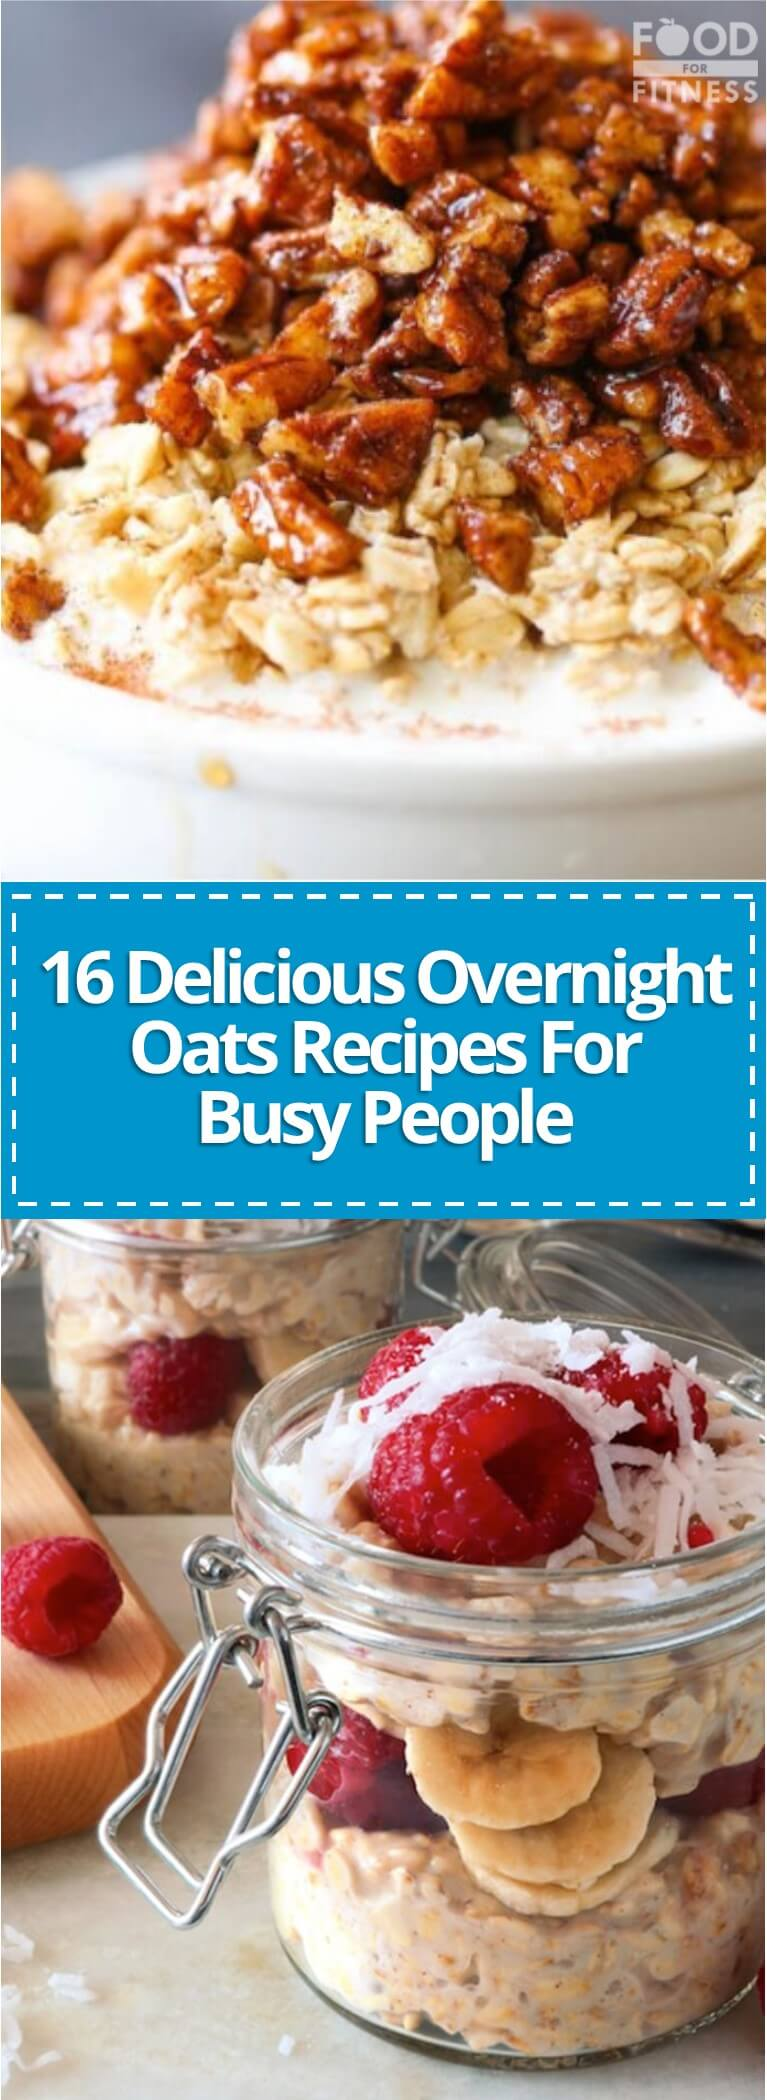 Cheap and simple to make, these overnight oats recipes are epic for folks who are short of time but still want filling, nutritious and delicious breakfasts.